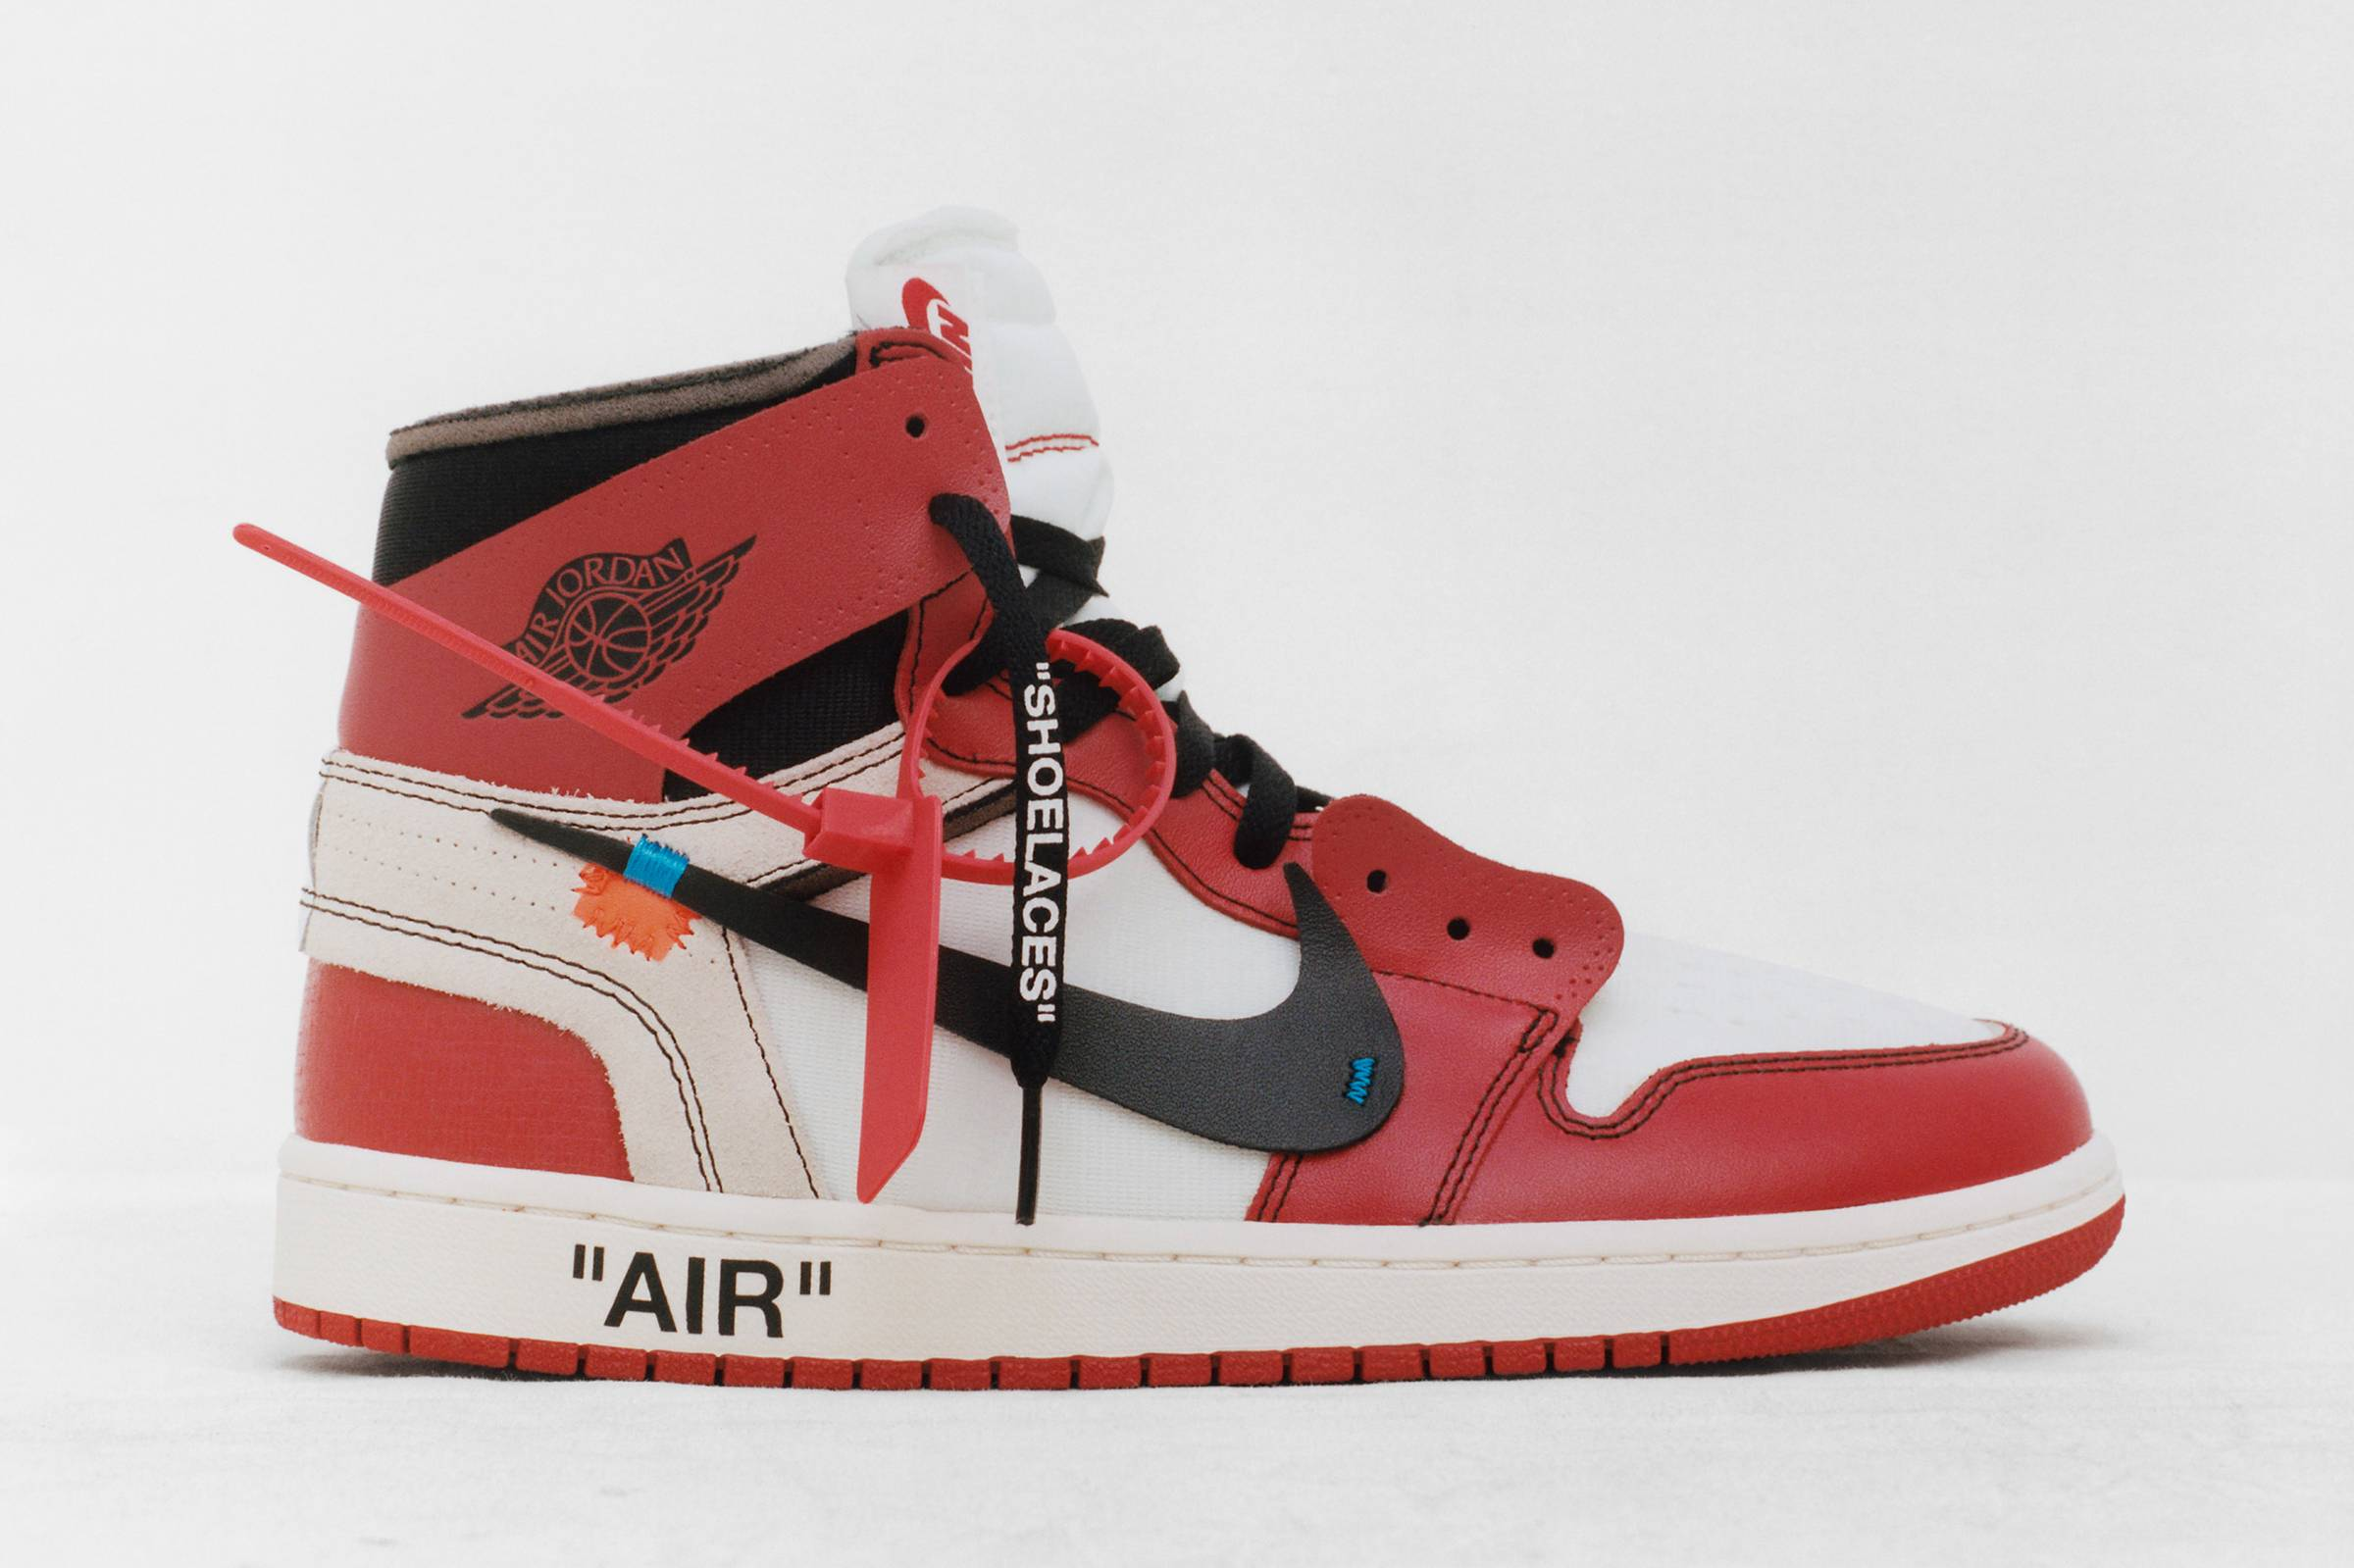 quality design 36071 83ac1 Off-White x Nike Jordan 1